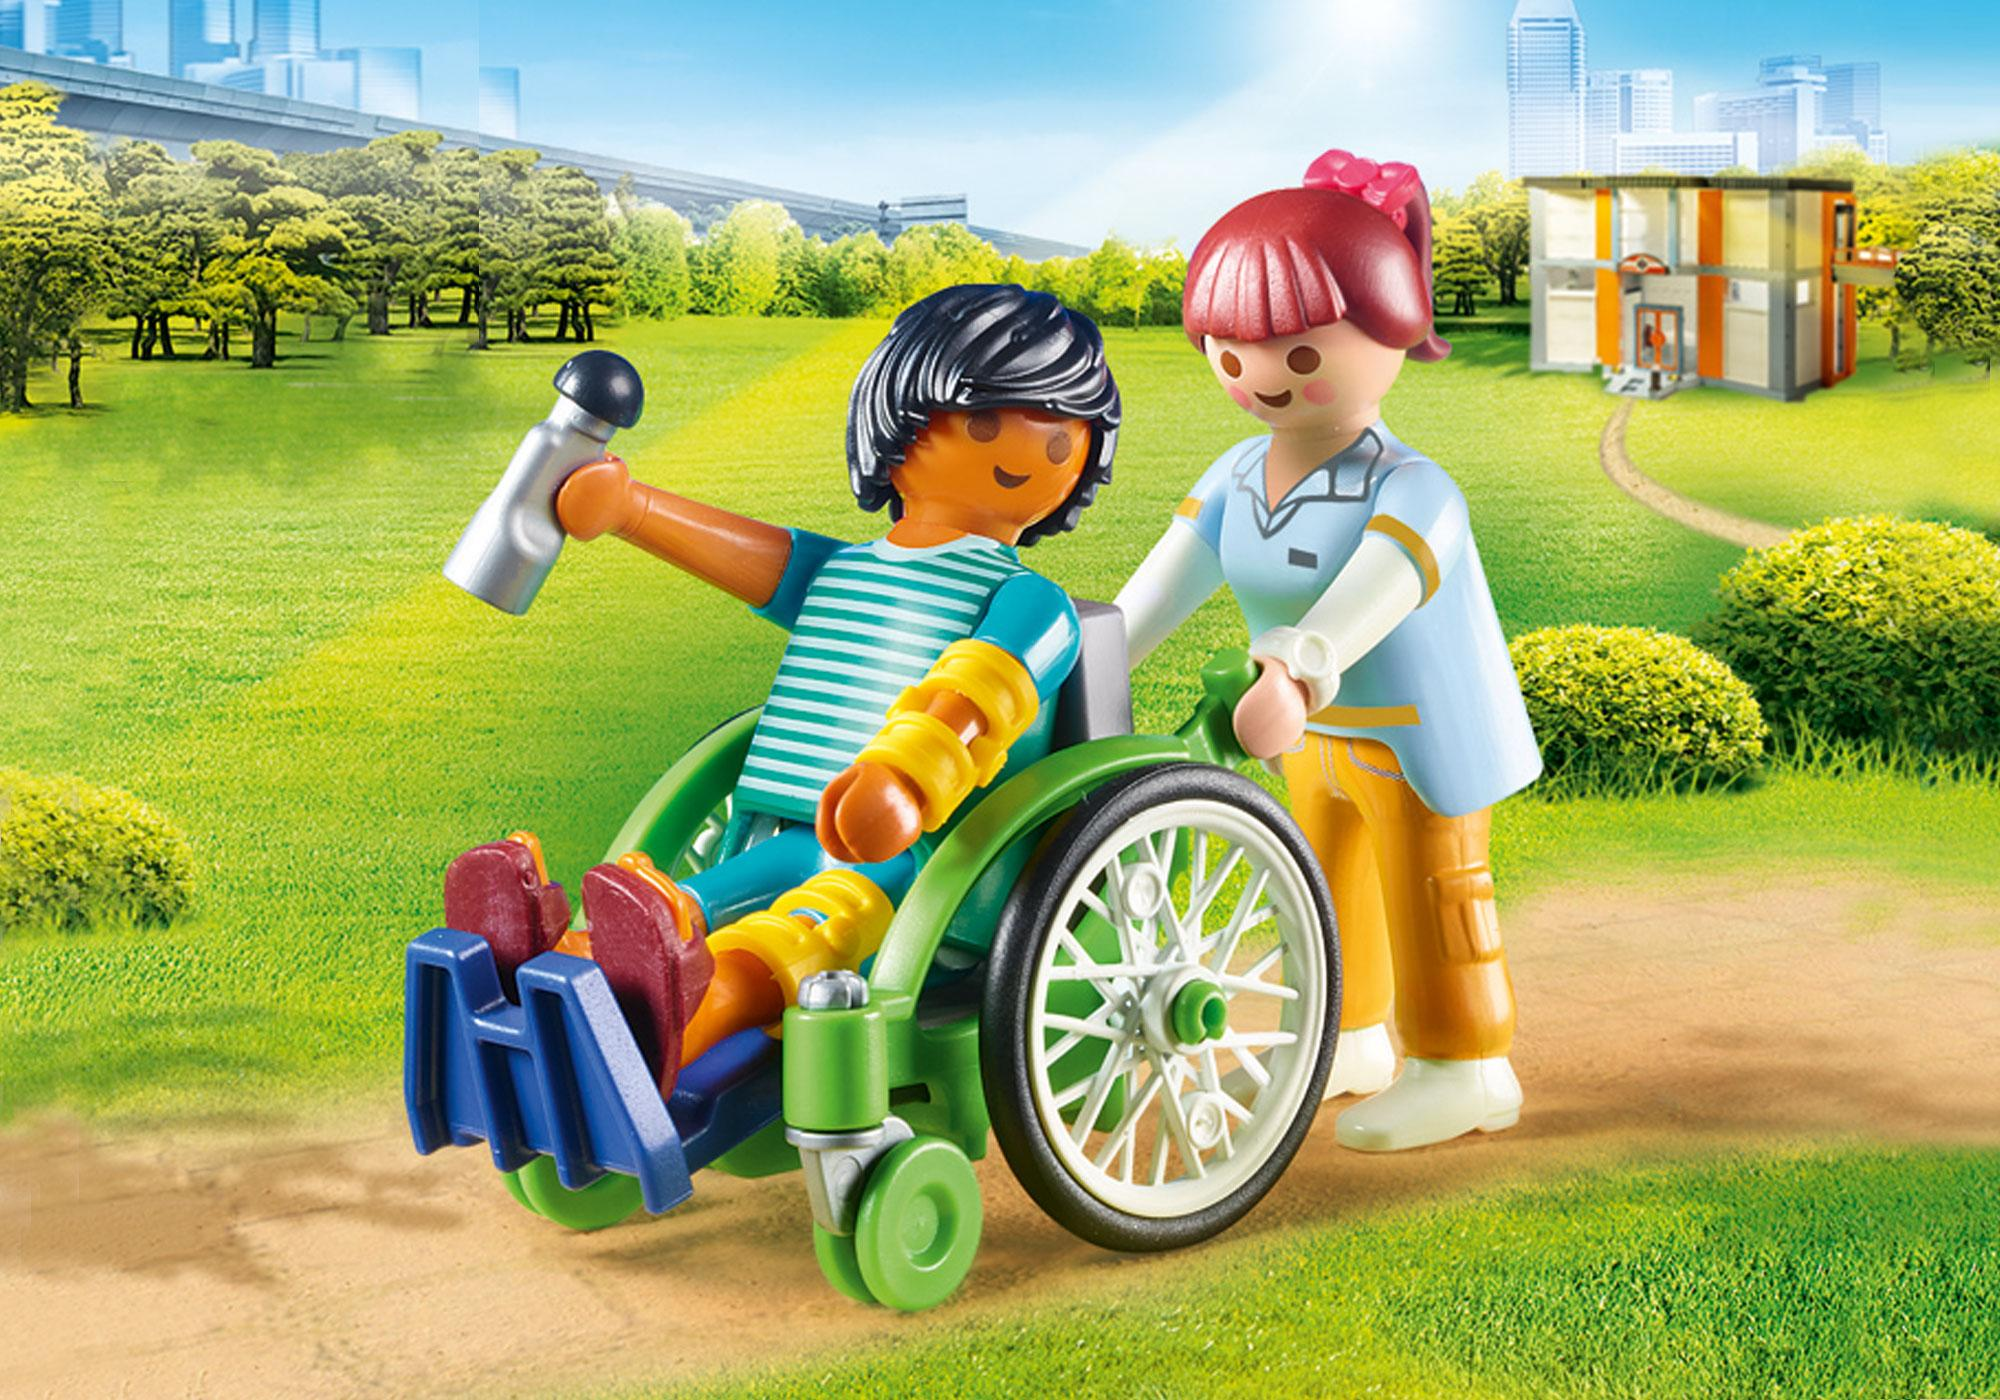 http://media.playmobil.com/i/playmobil/70193_product_detail/Paziente con sedia a rotelle